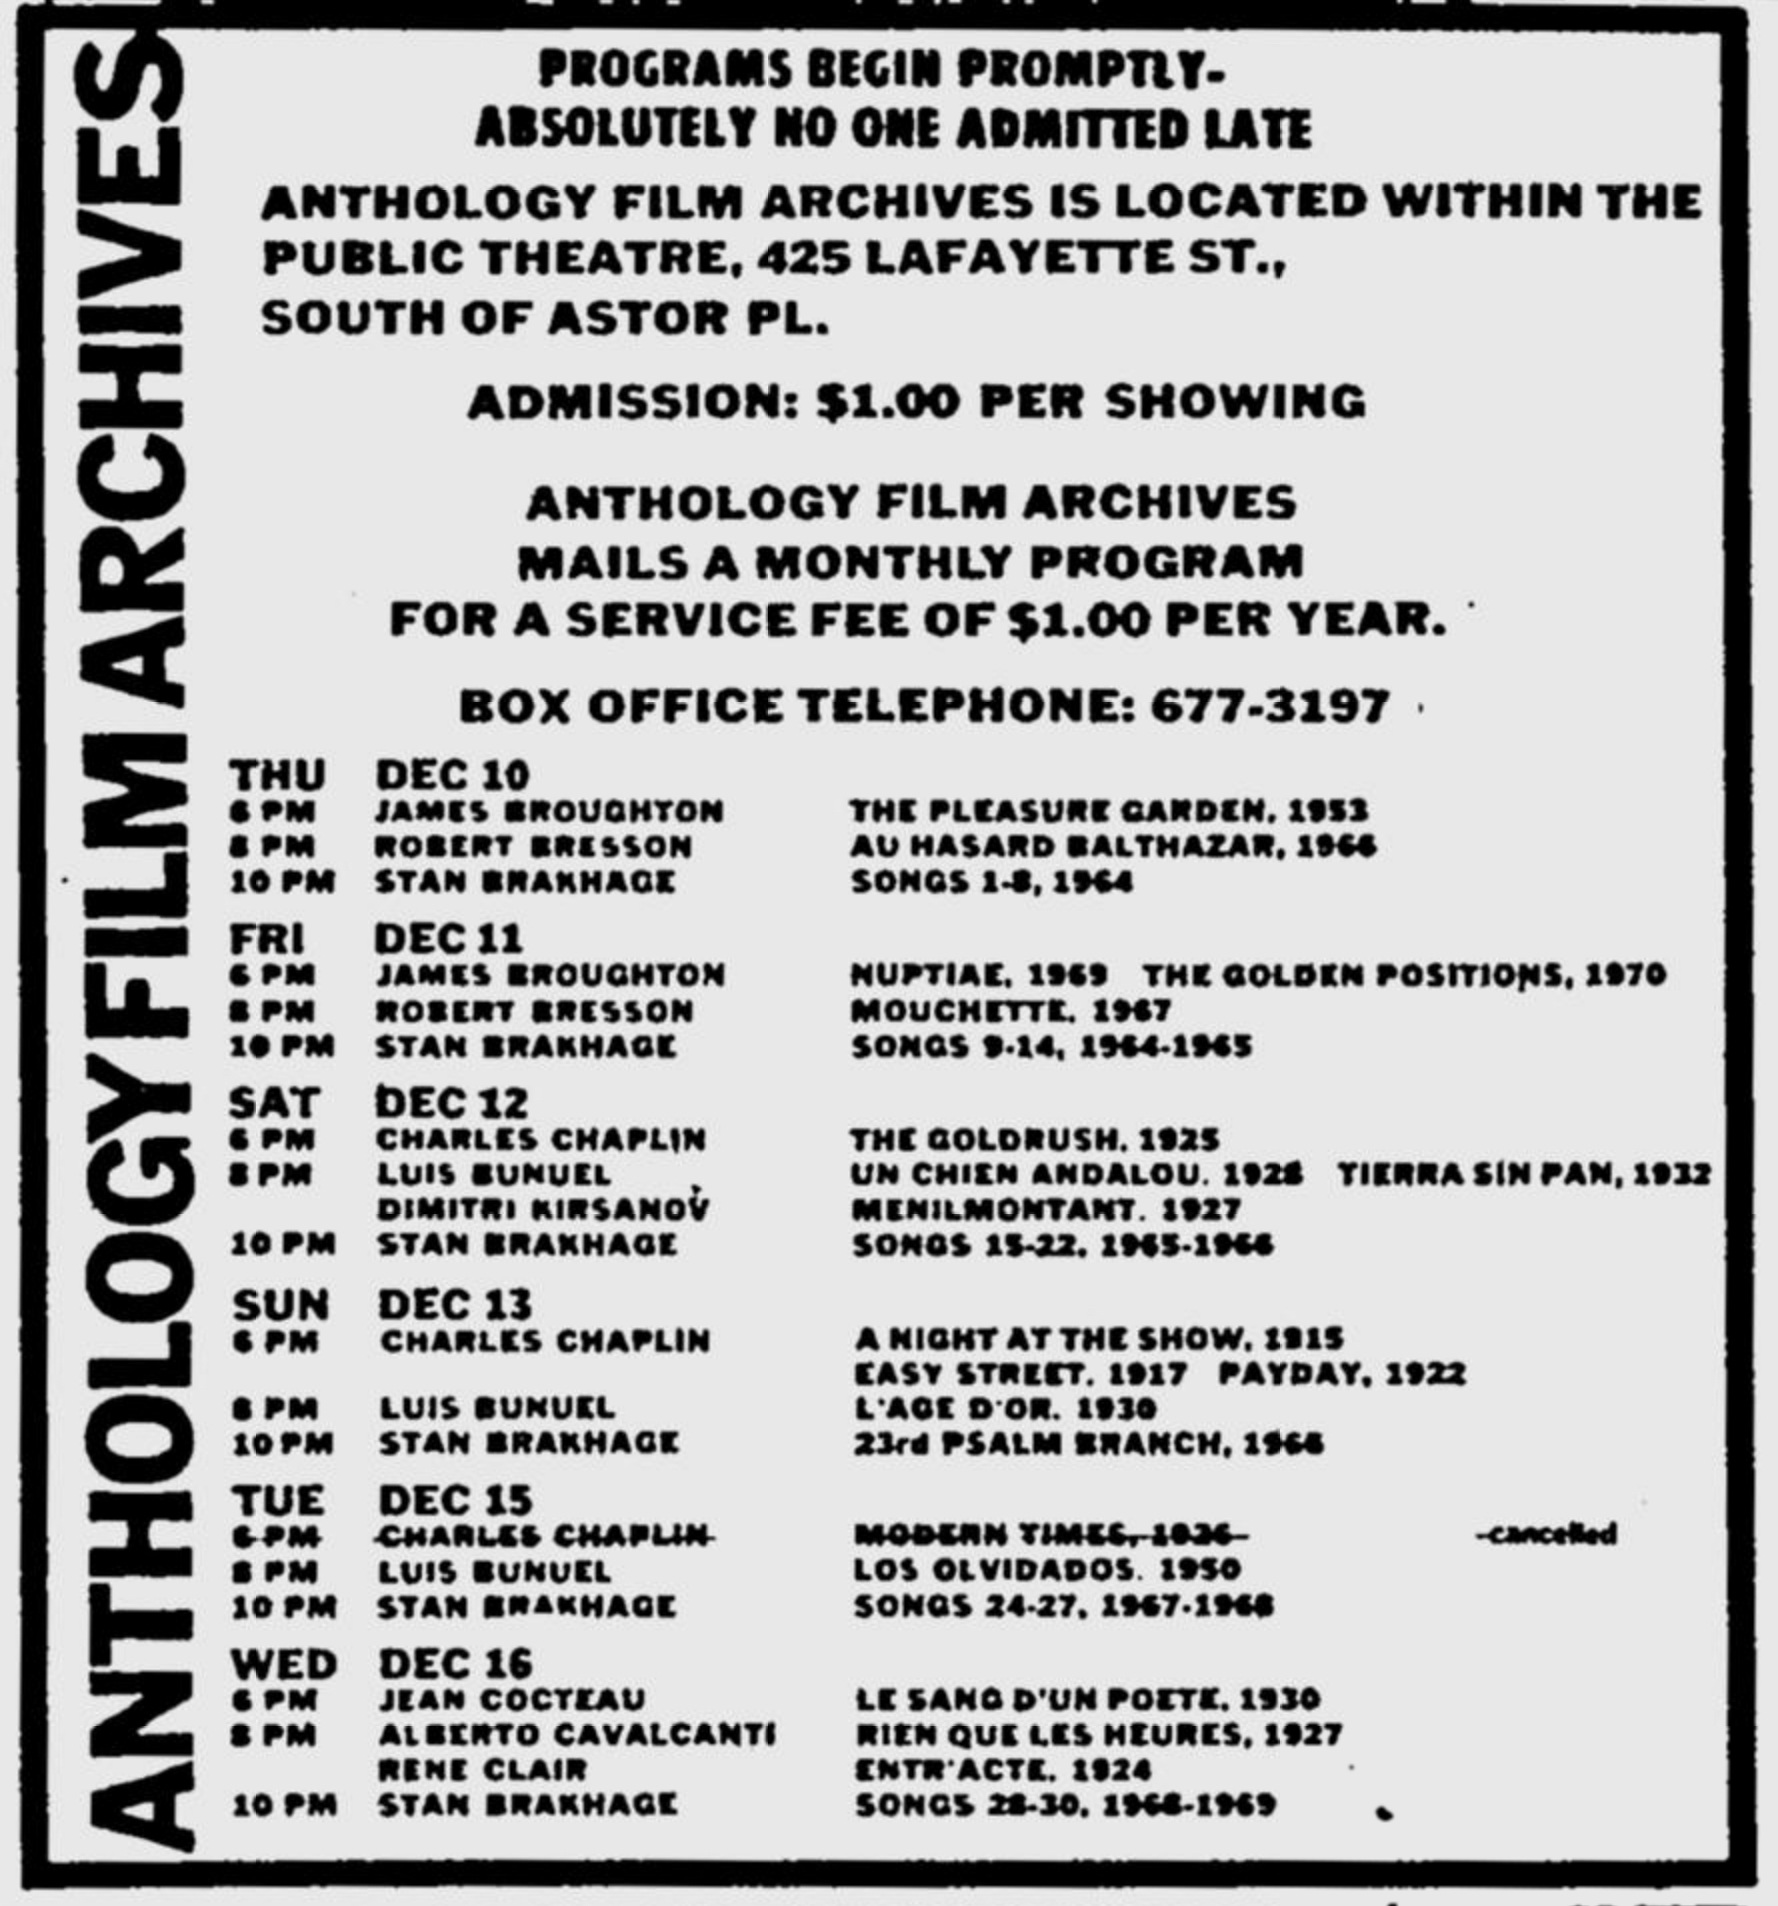 Advertisement for the Anthology Film Archives in the 12.10.70 Village Voice